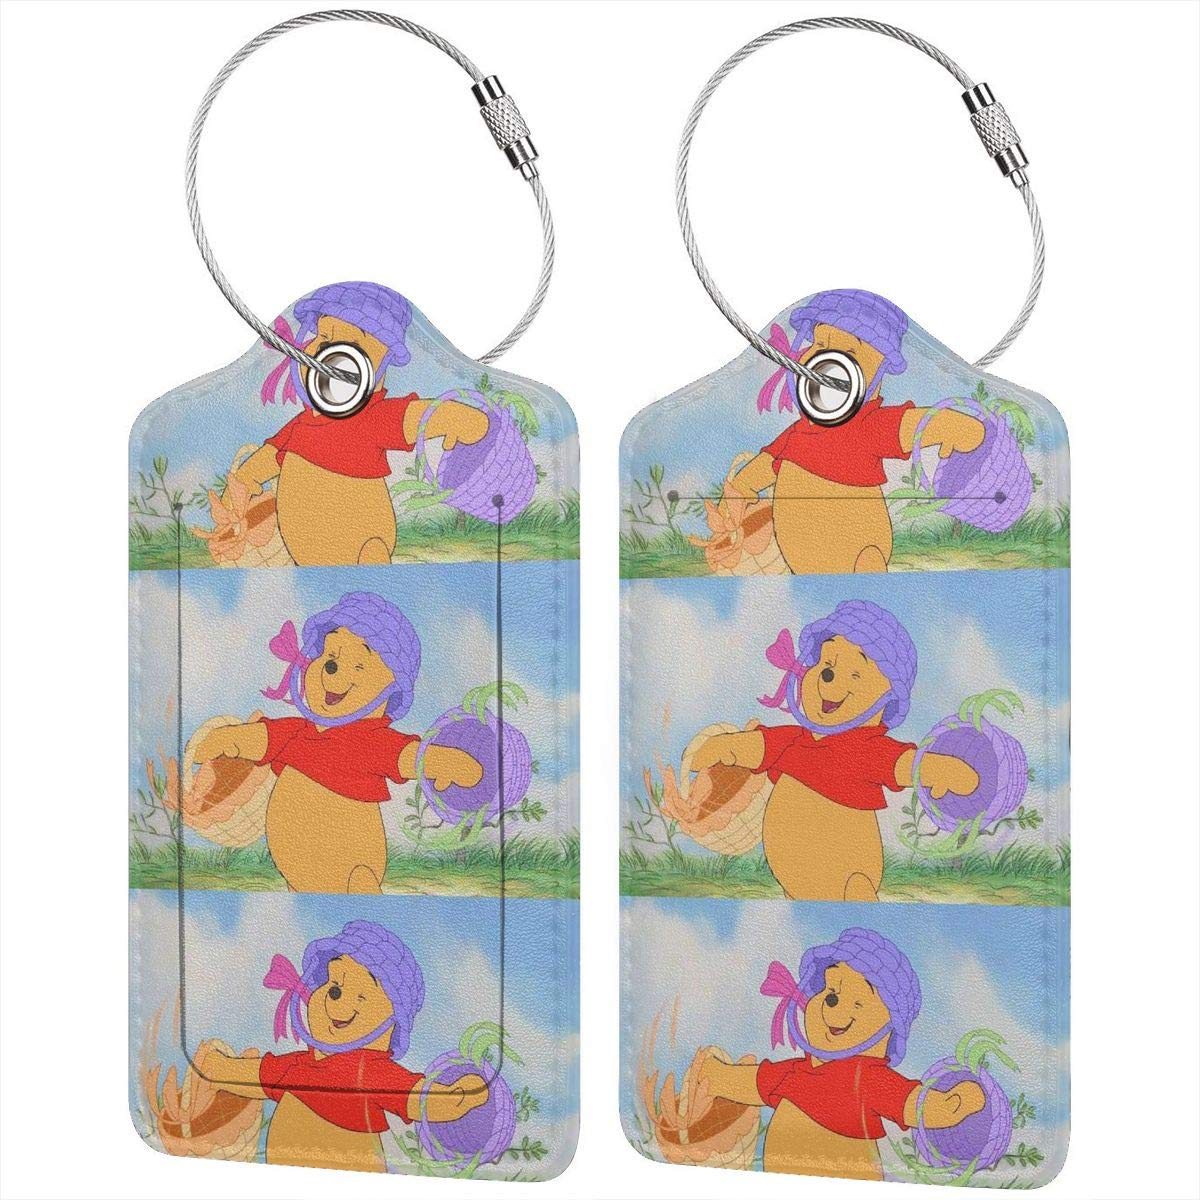 Fashion Colorful Mickey Mouse Soft Leather Luggage Tags With Privacy Cover 1-4 Pcs Choose Suit For Travel,Vacation